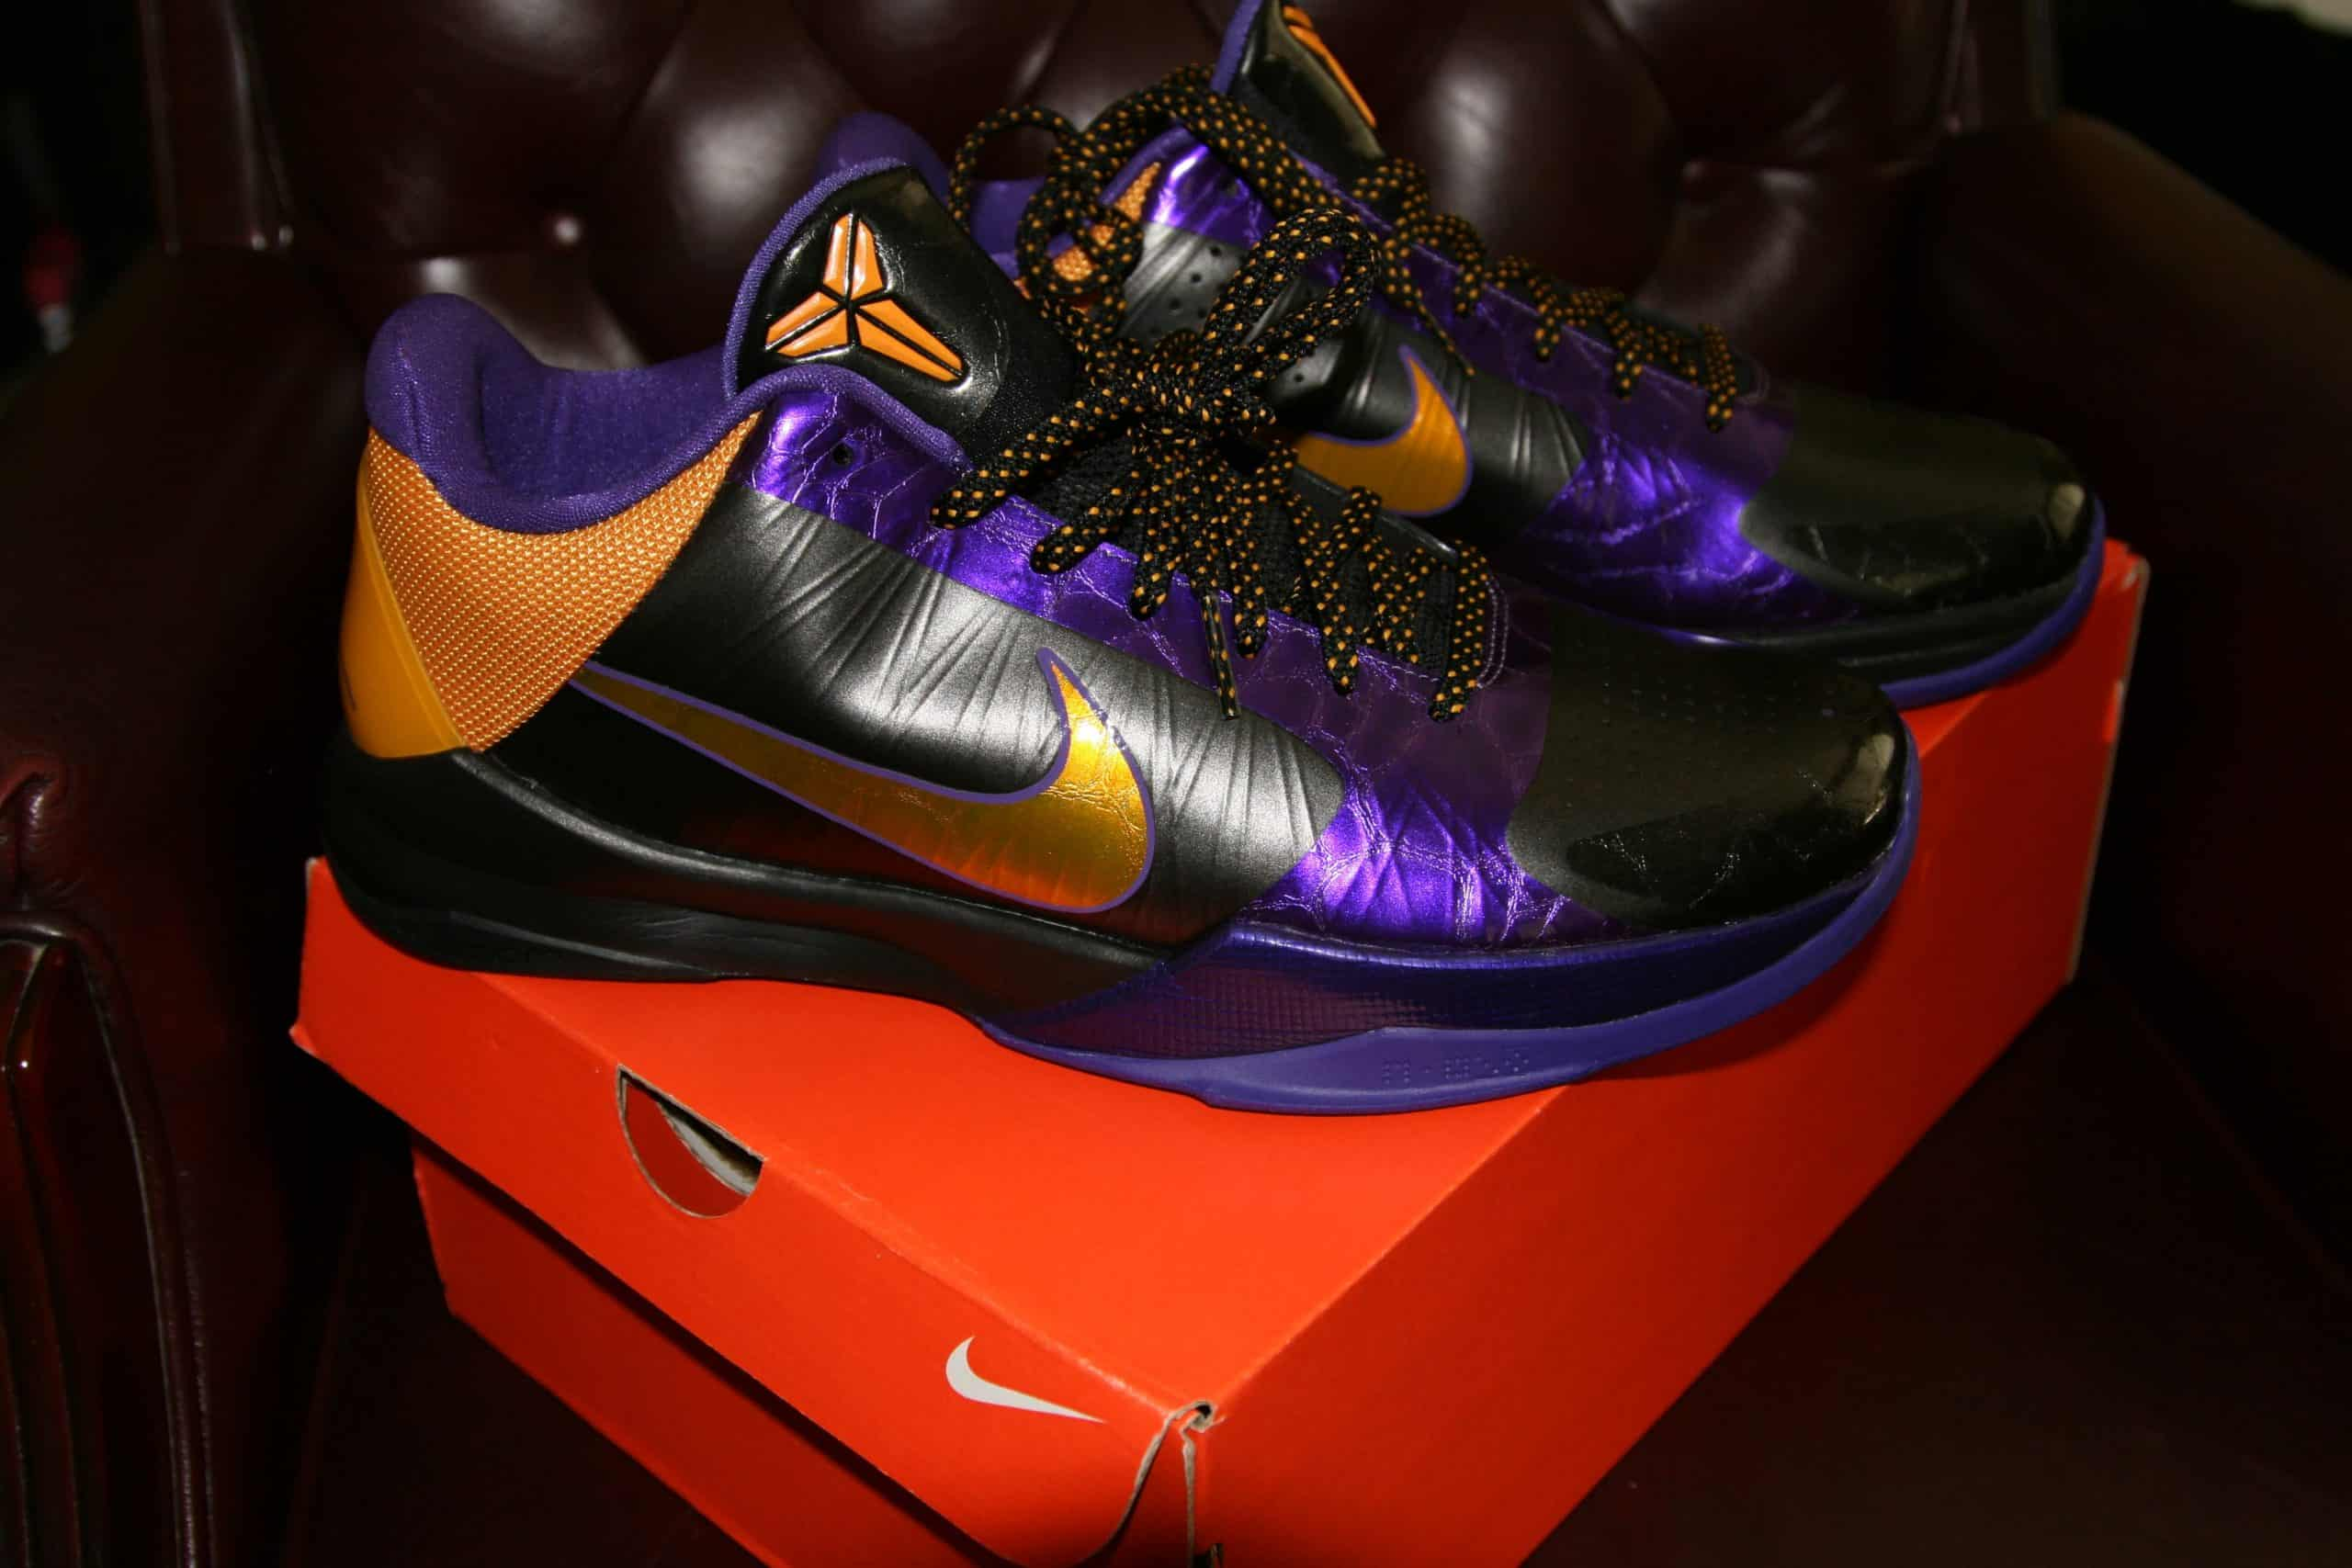 KOBE BRYANT NIKE SHOES PLAYOFF ORIGINALS